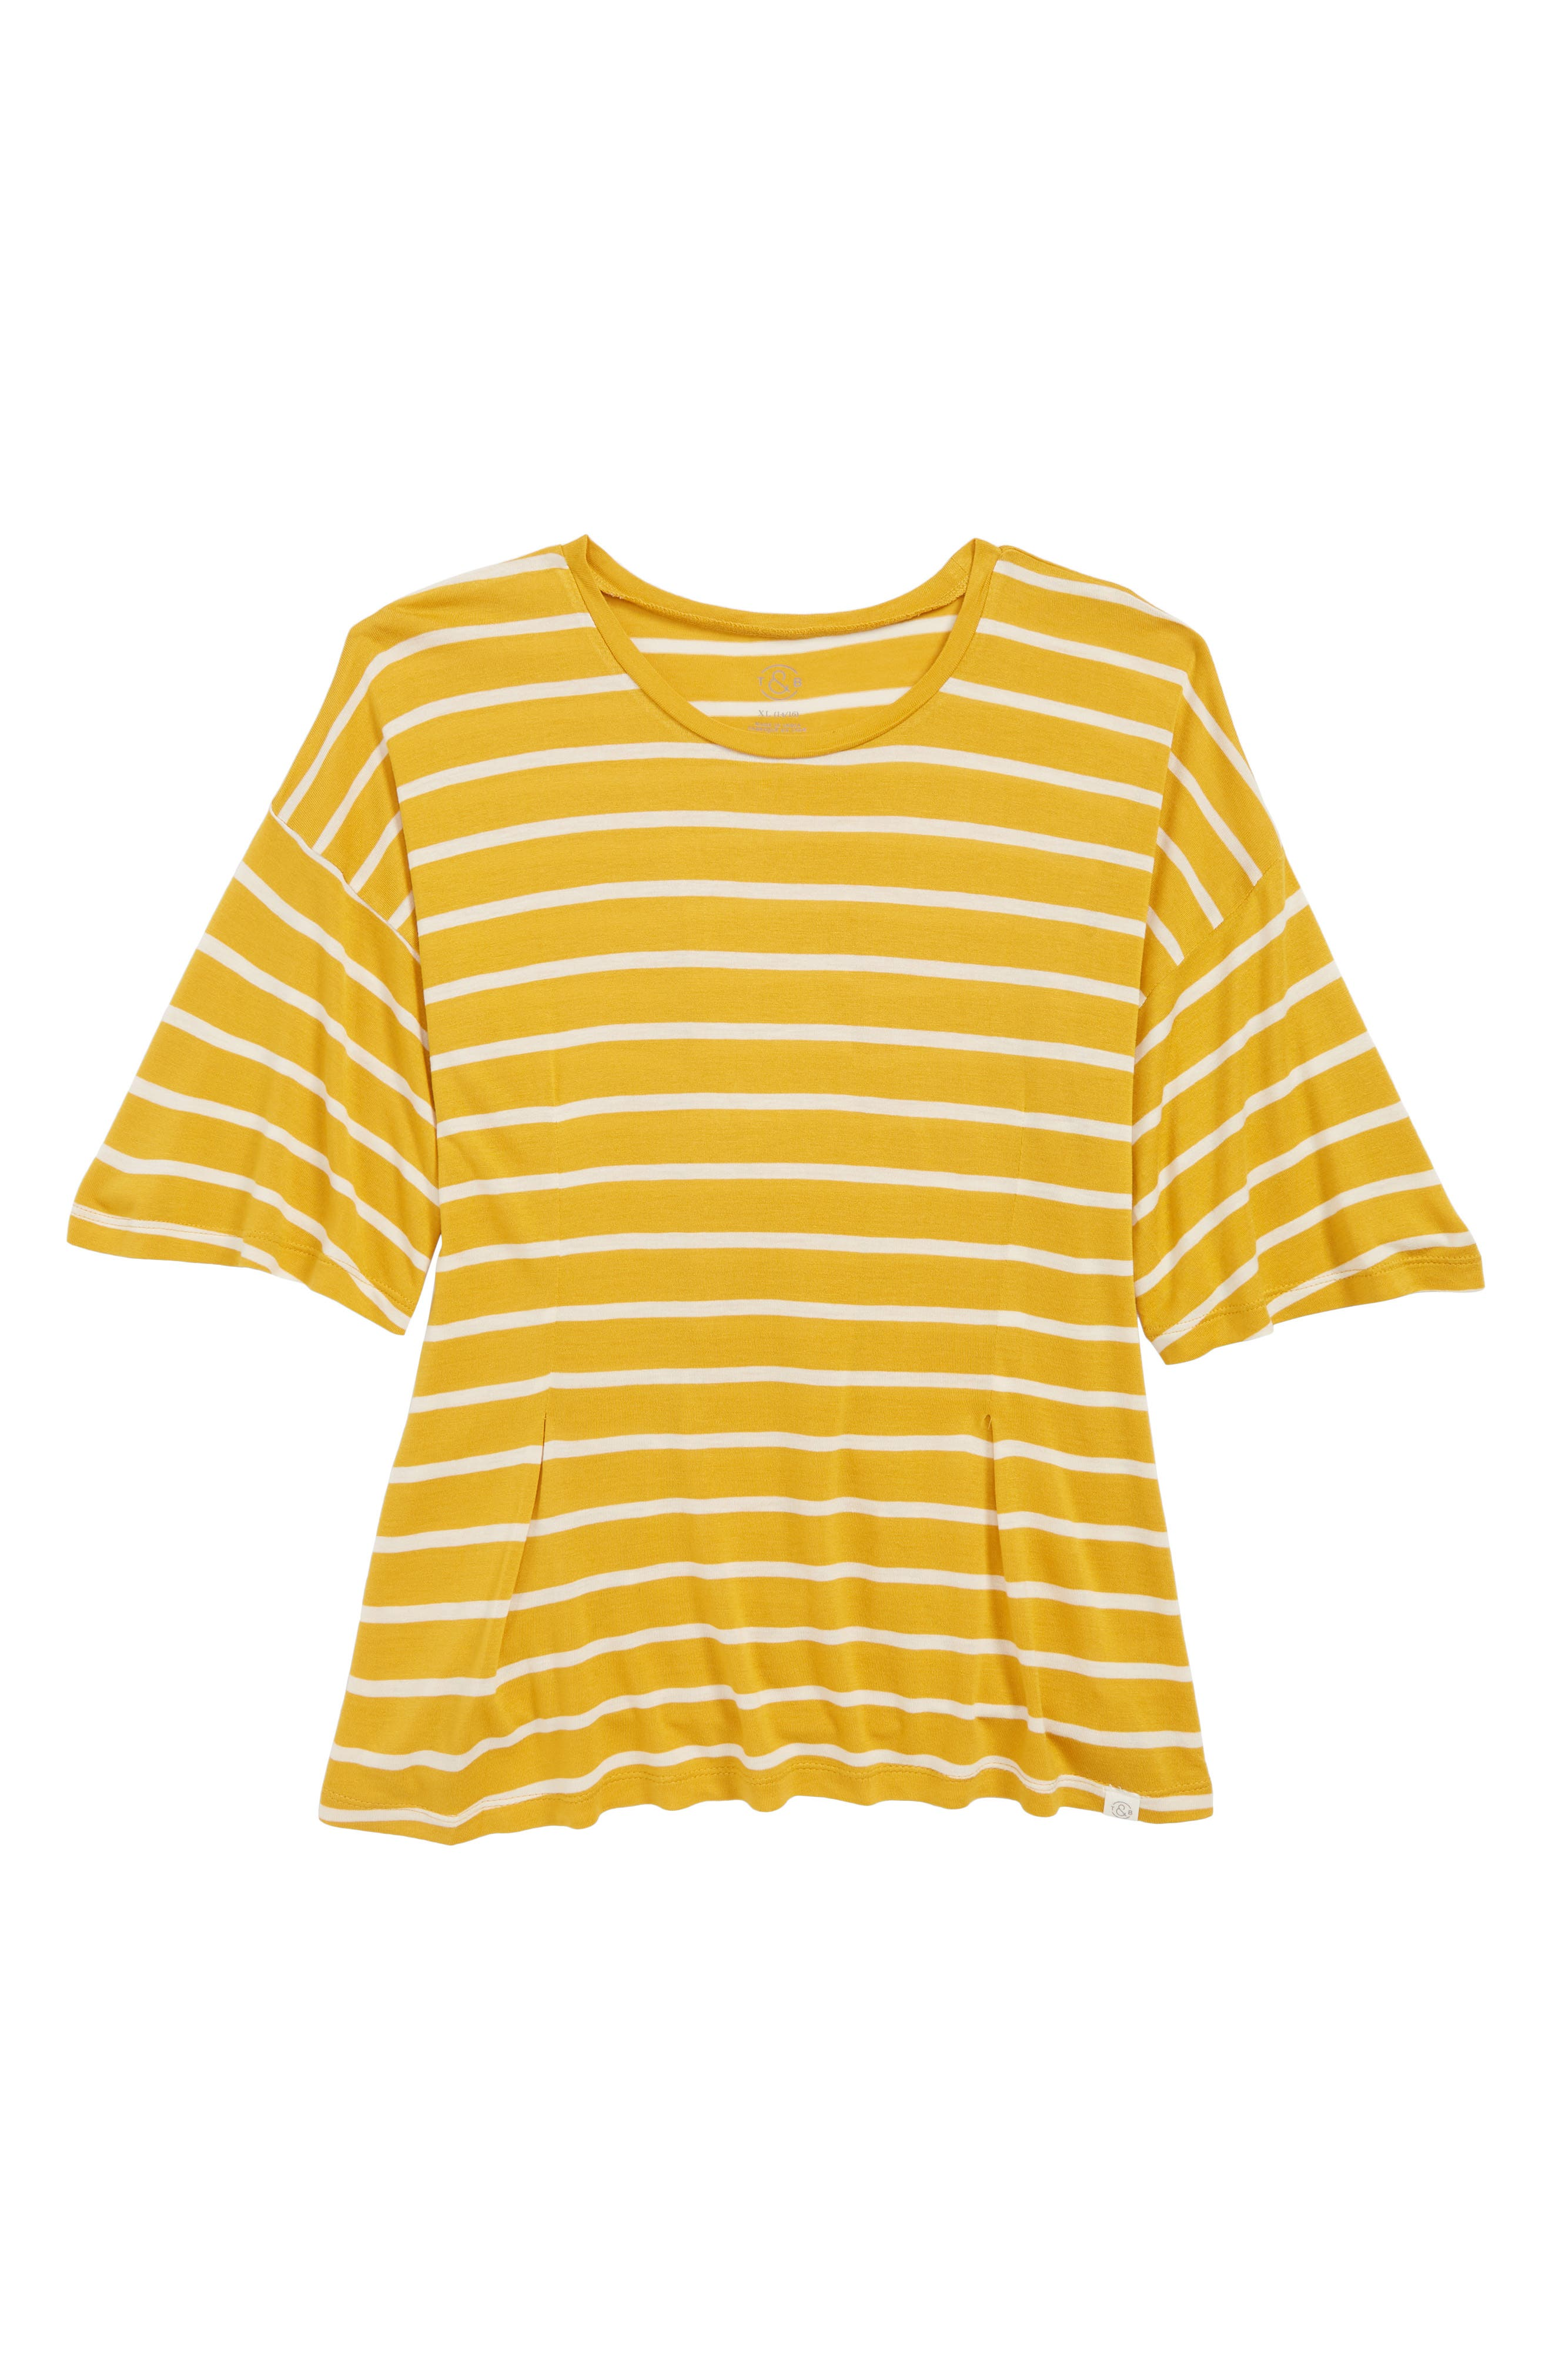 Lace-Up Back Tee,                         Main,                         color, YELLOW MINERAL- IVORY STRIPE